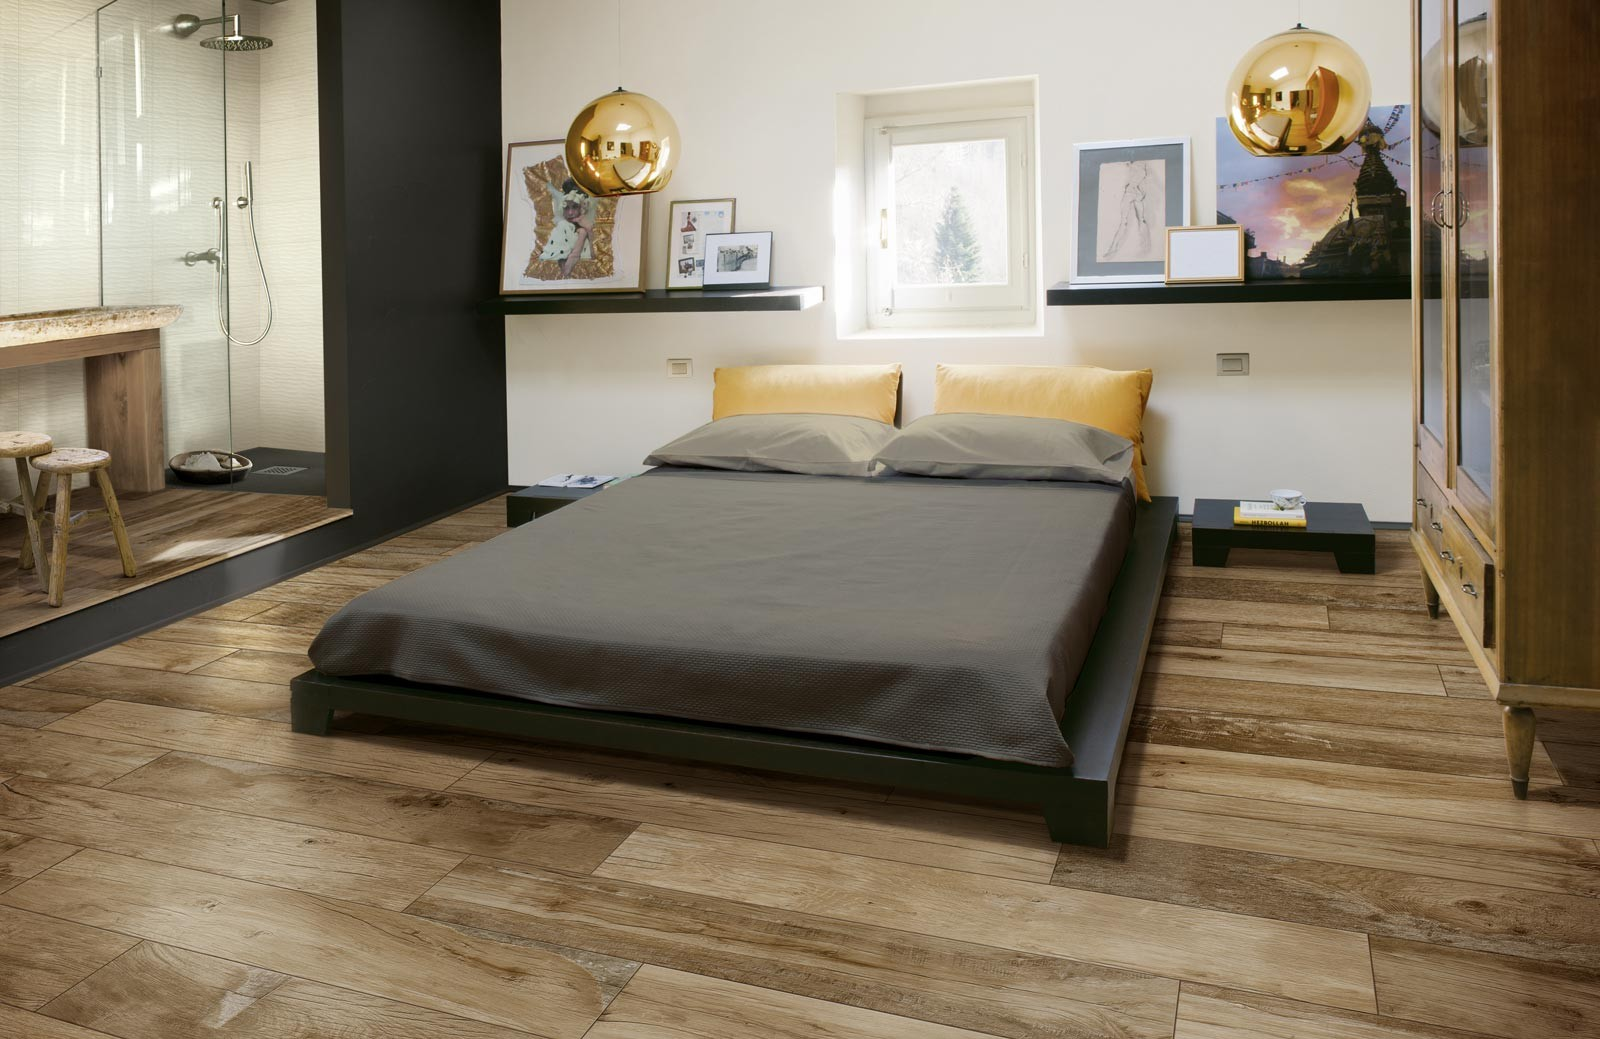 Woodmania Caramel Wood Effect 200 x 1200mm